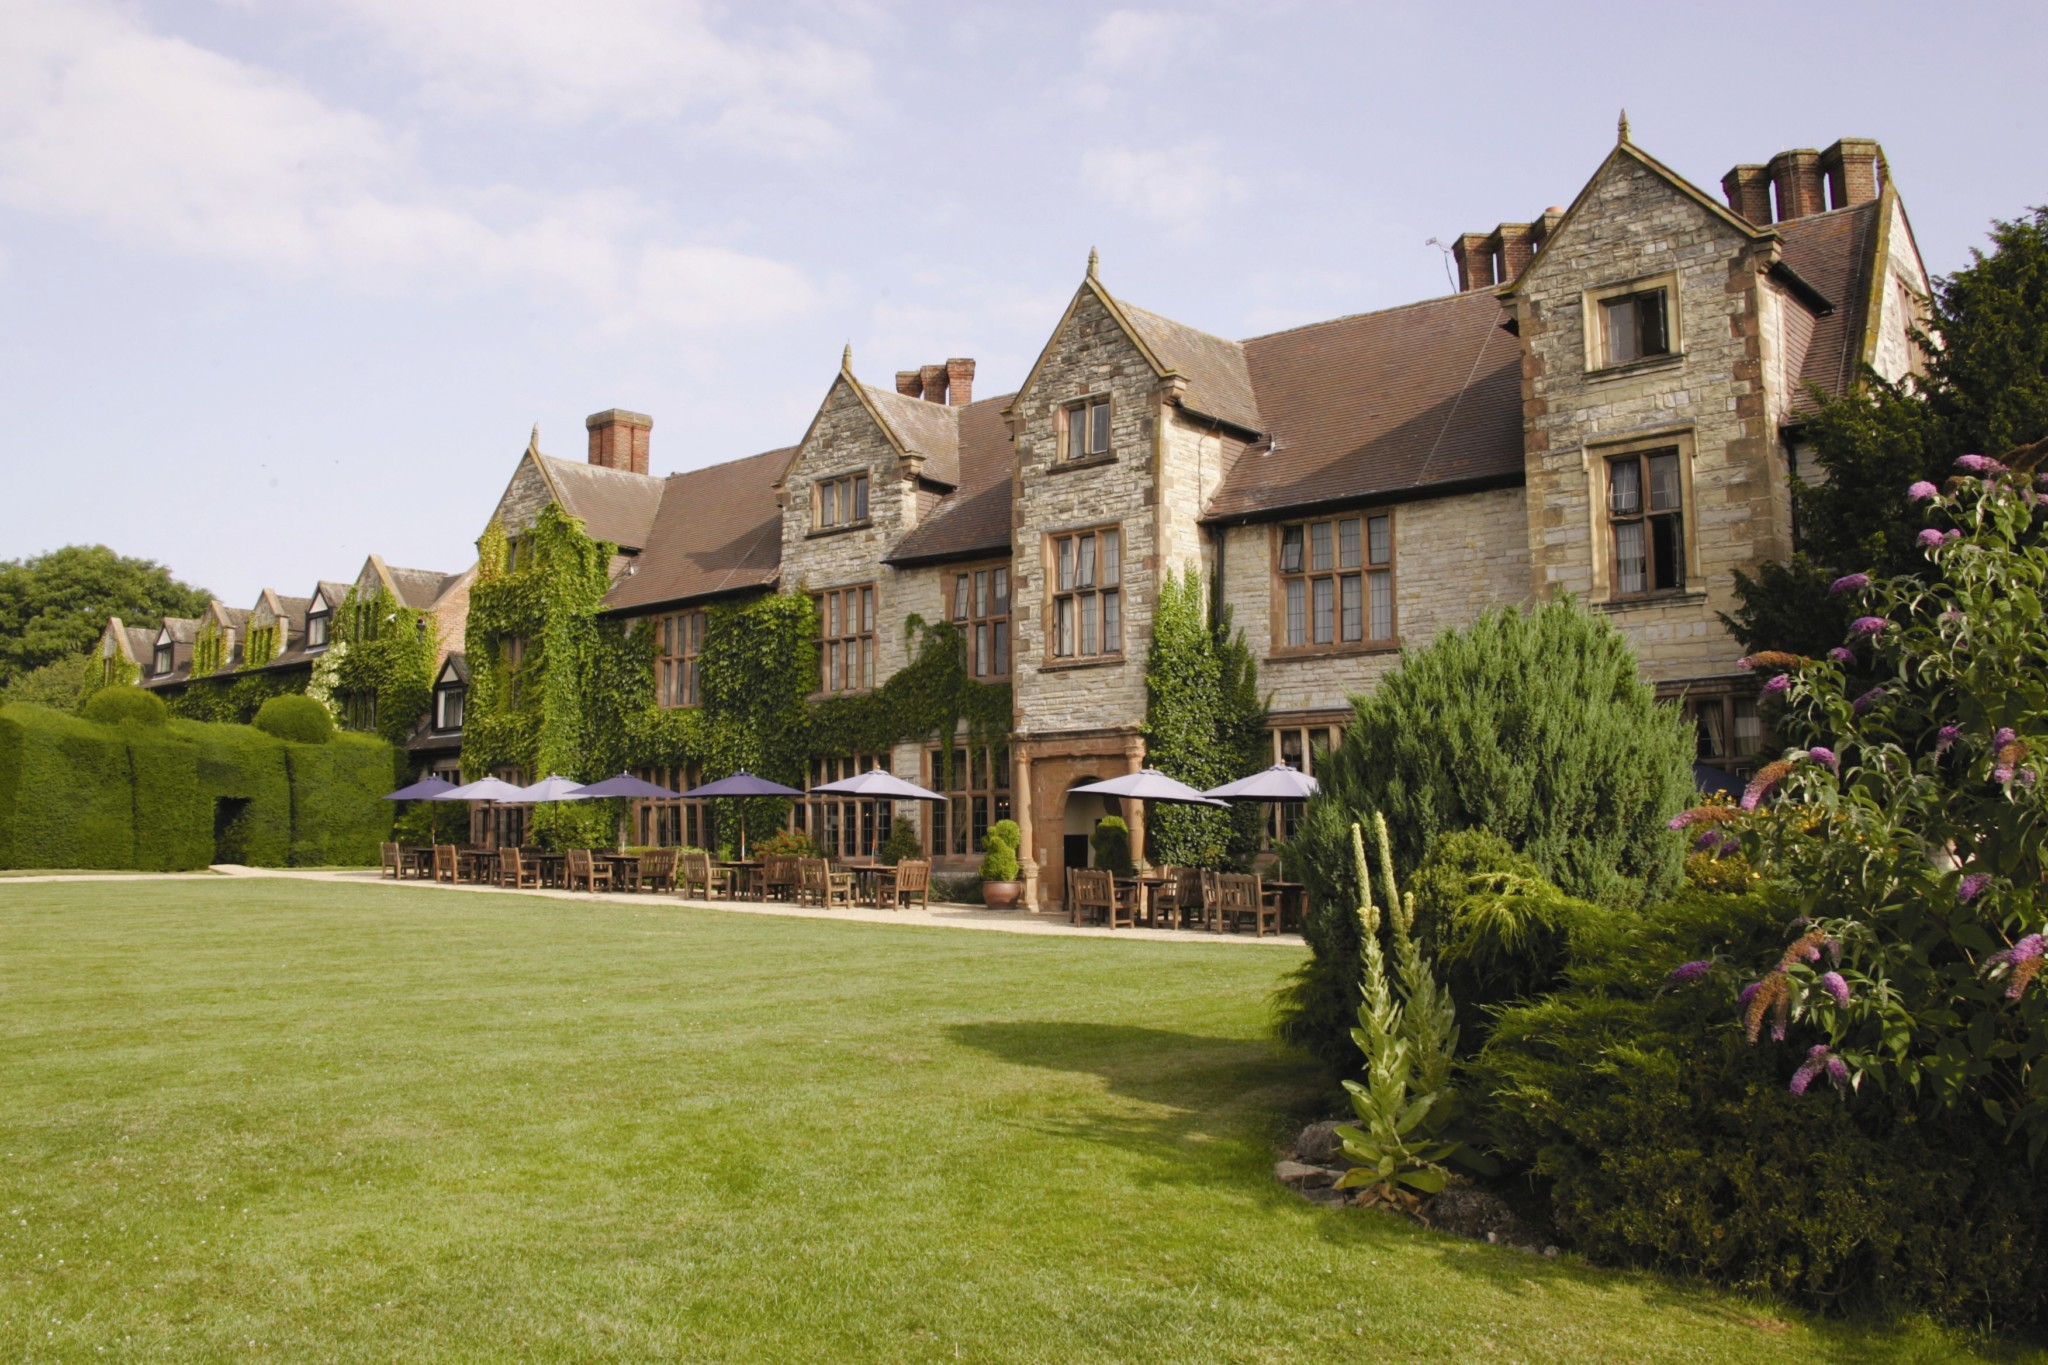 The hotel collection has sold the four star billesley manor hotel on the outskirts of stratford upon avon to an overseas private investor